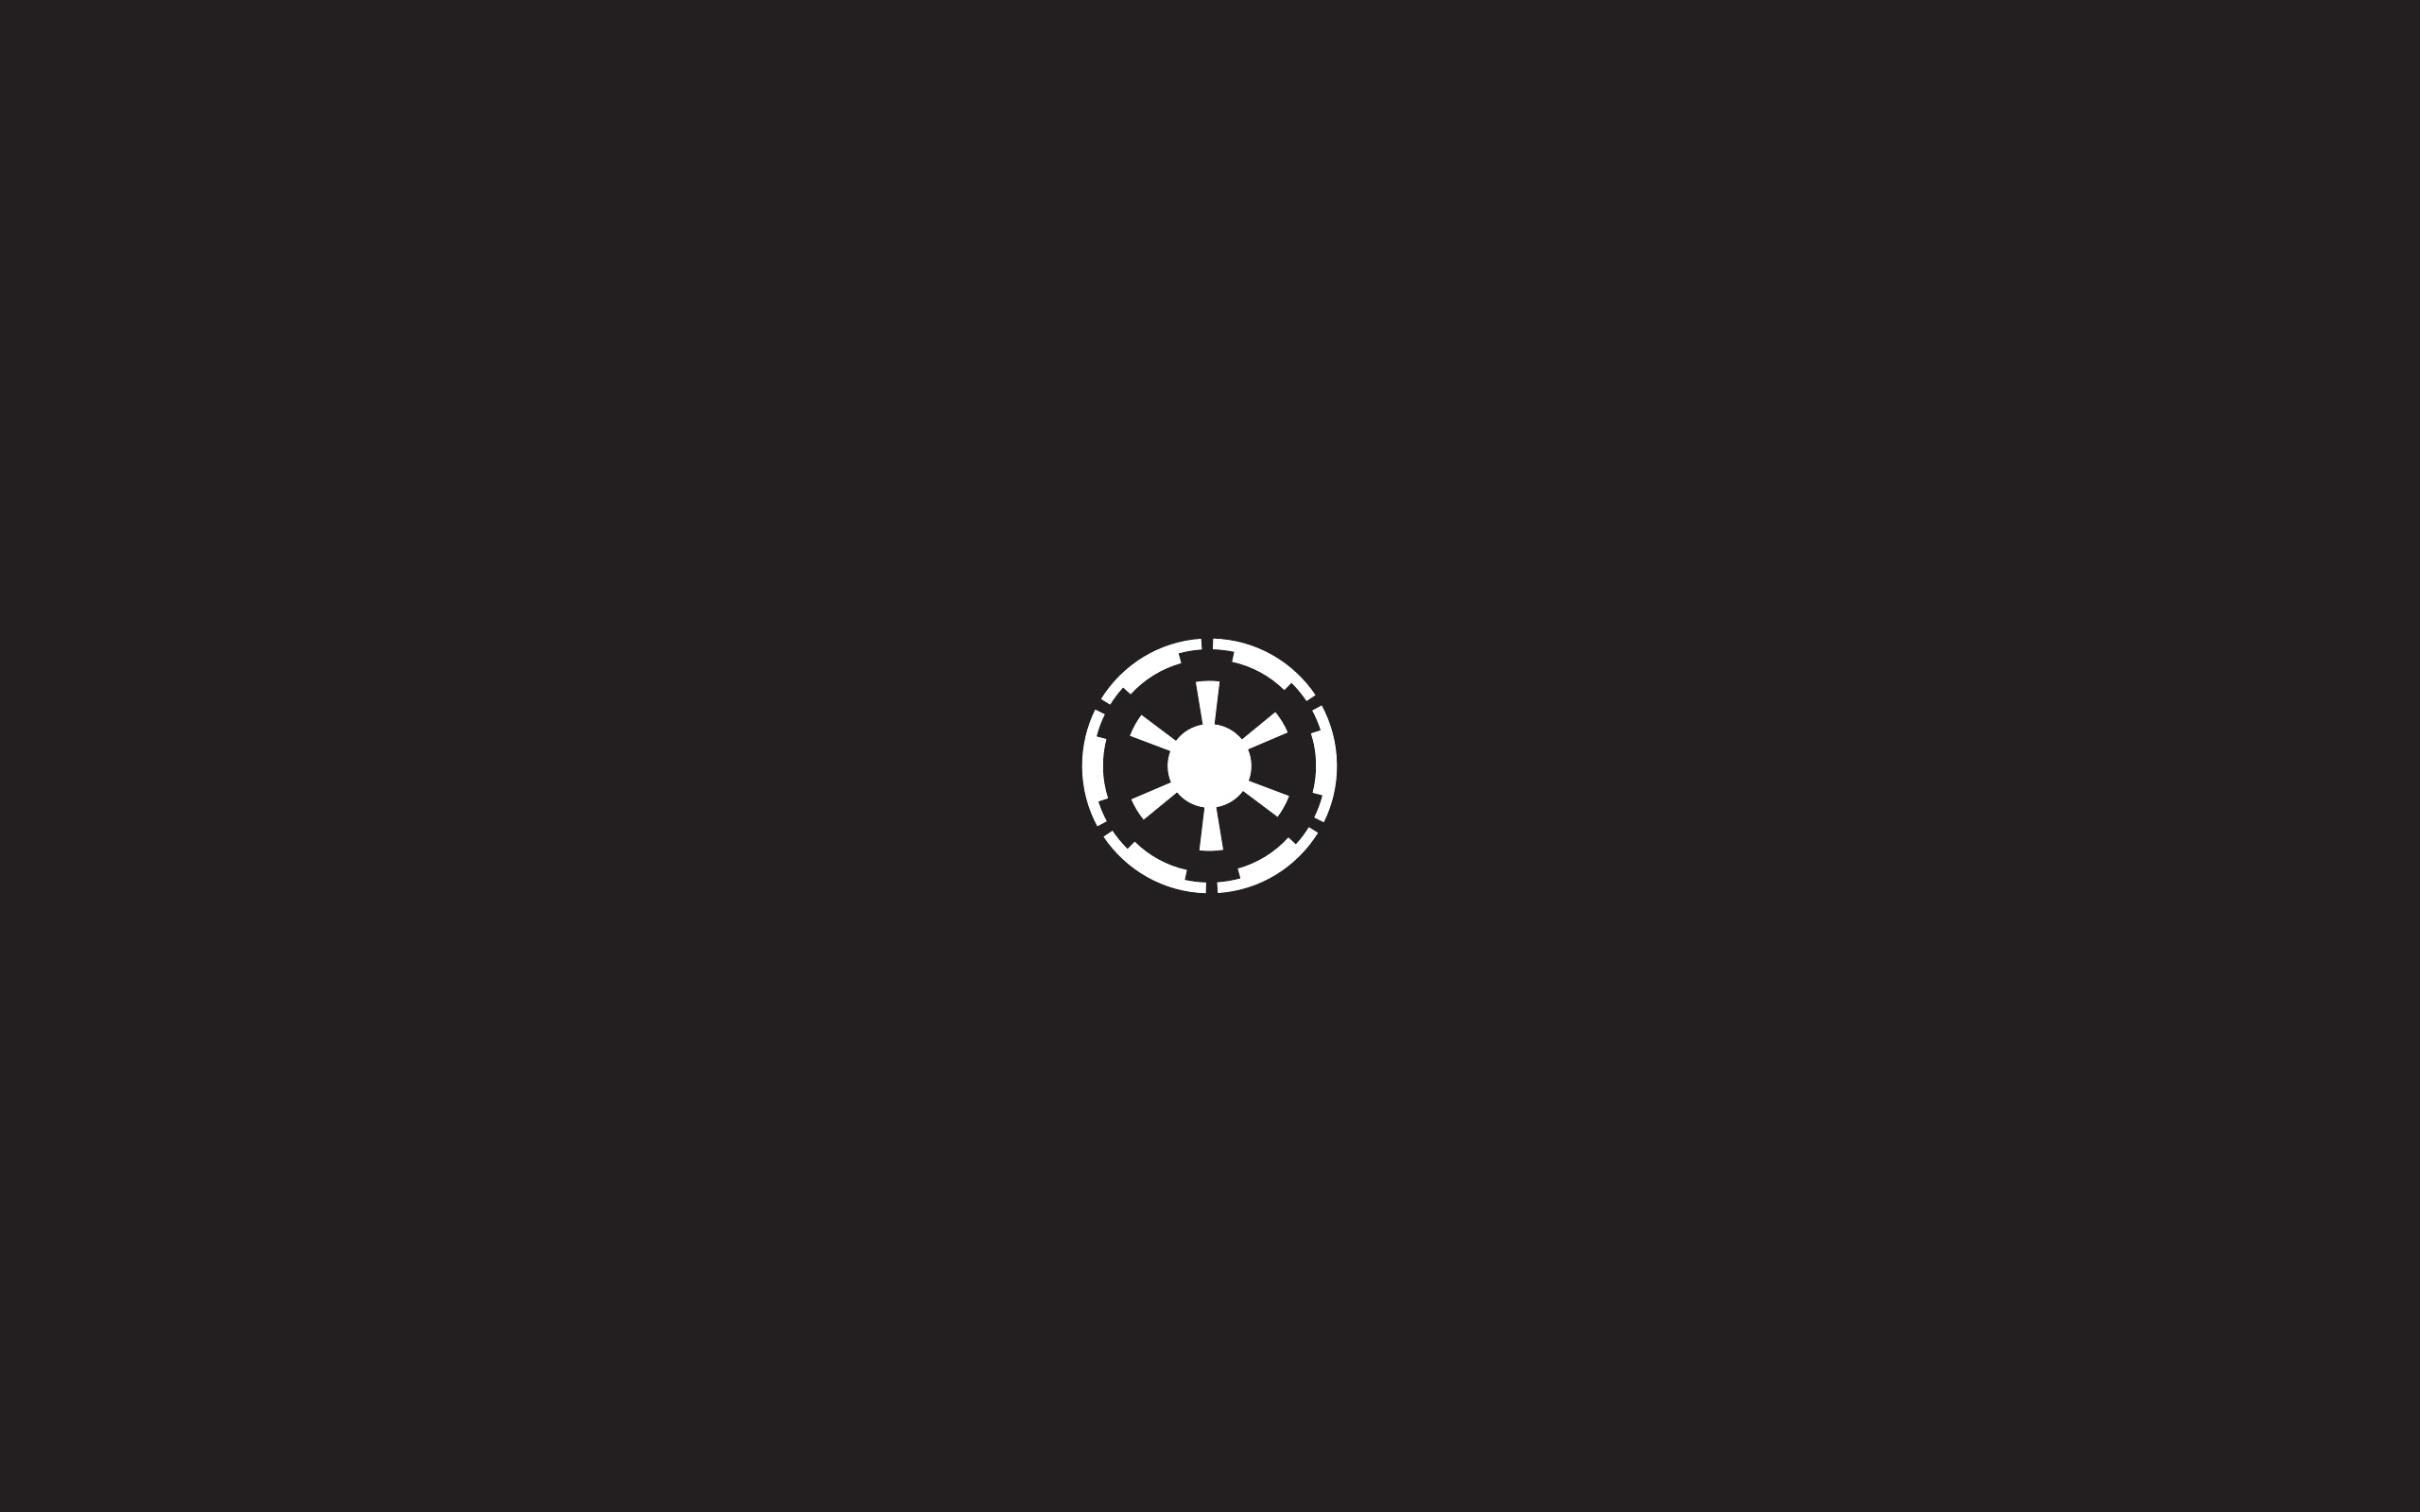 Star Wars Rebel Symbol Wallpaper Posted By Ethan Tremblay